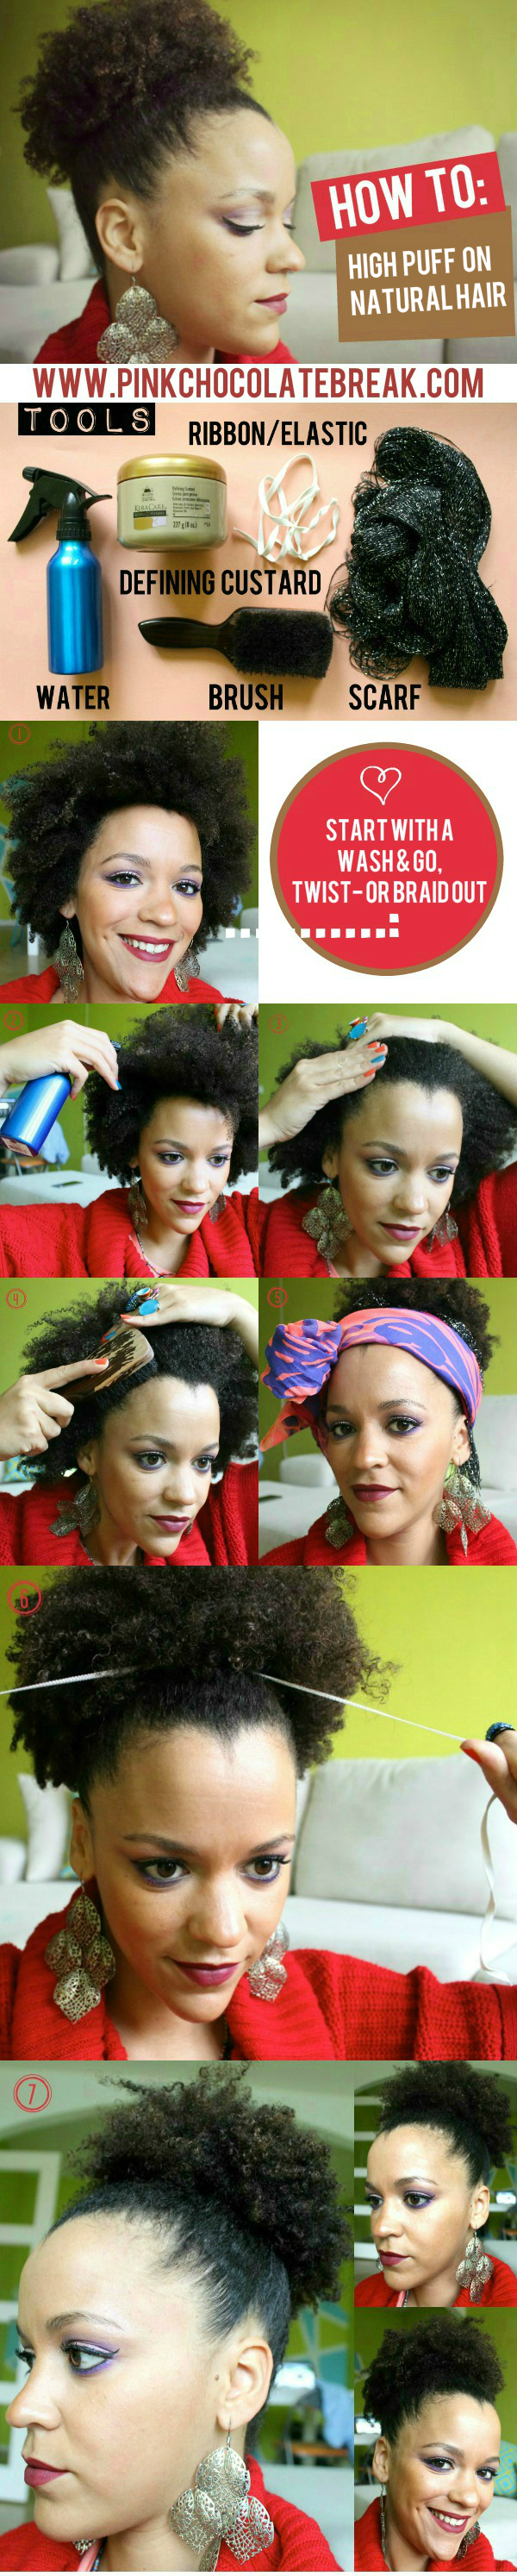 how to high bun on natural hair 11